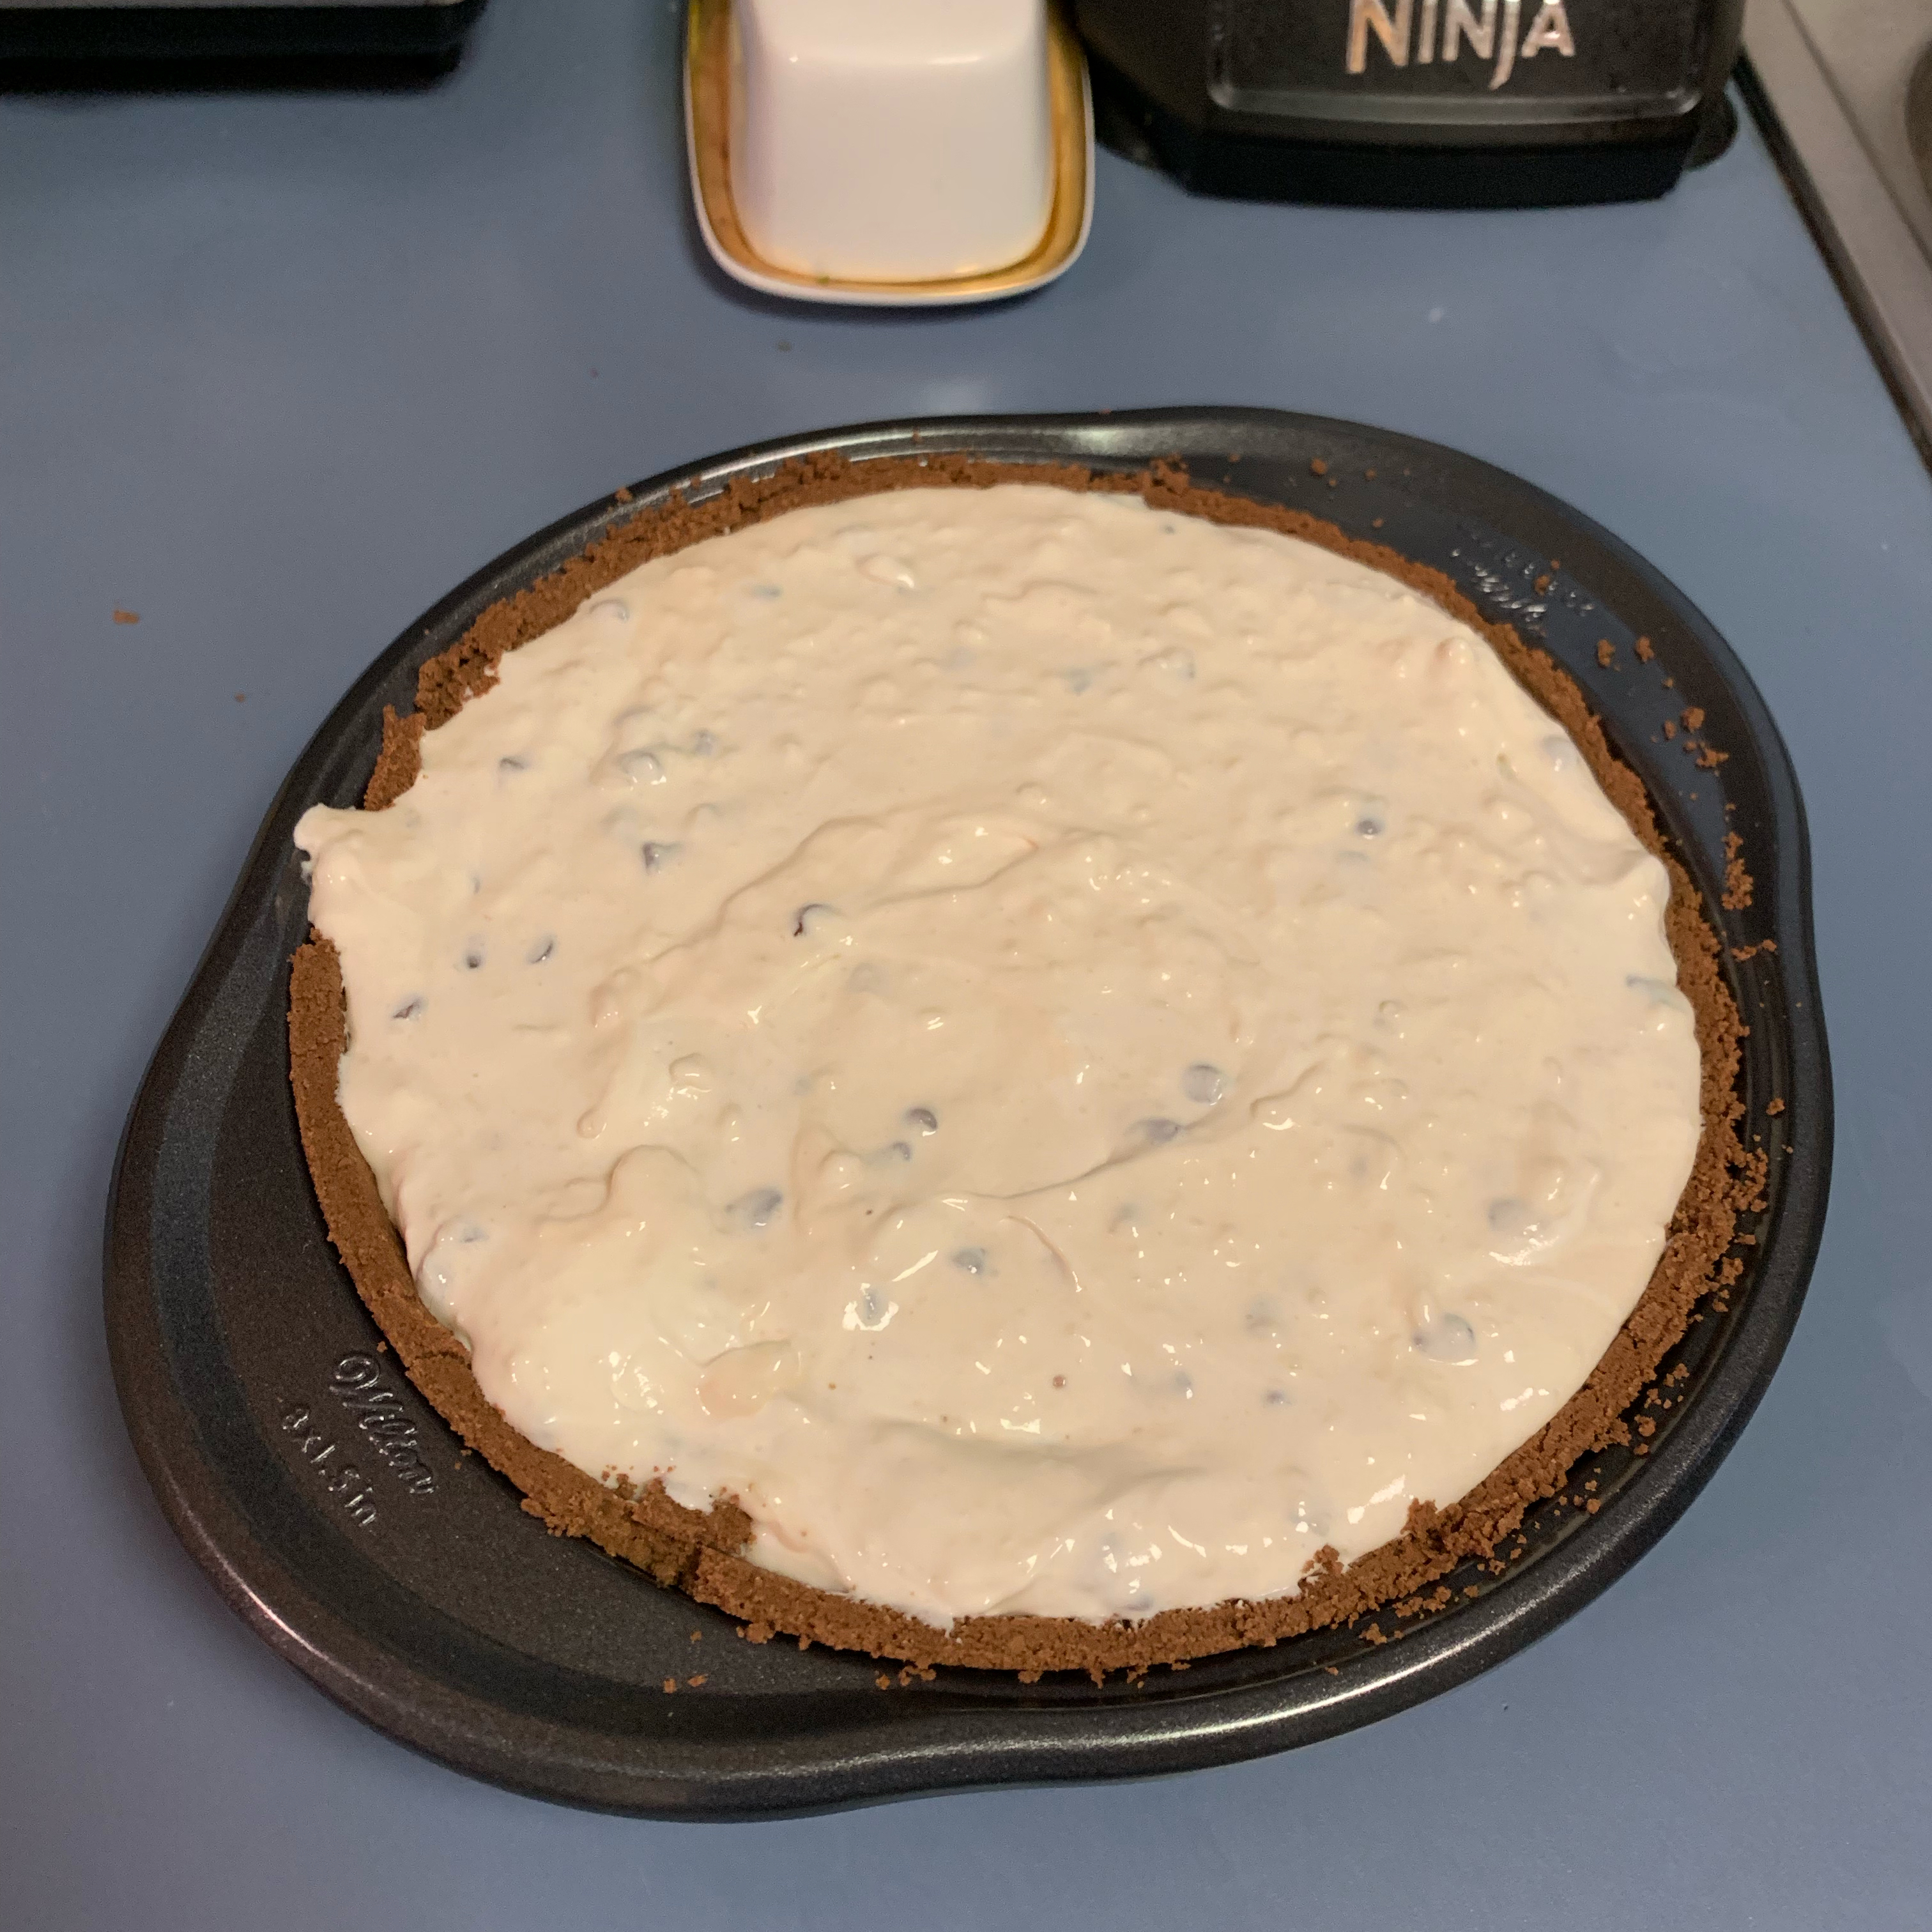 Peppermint Cheesecake Vic